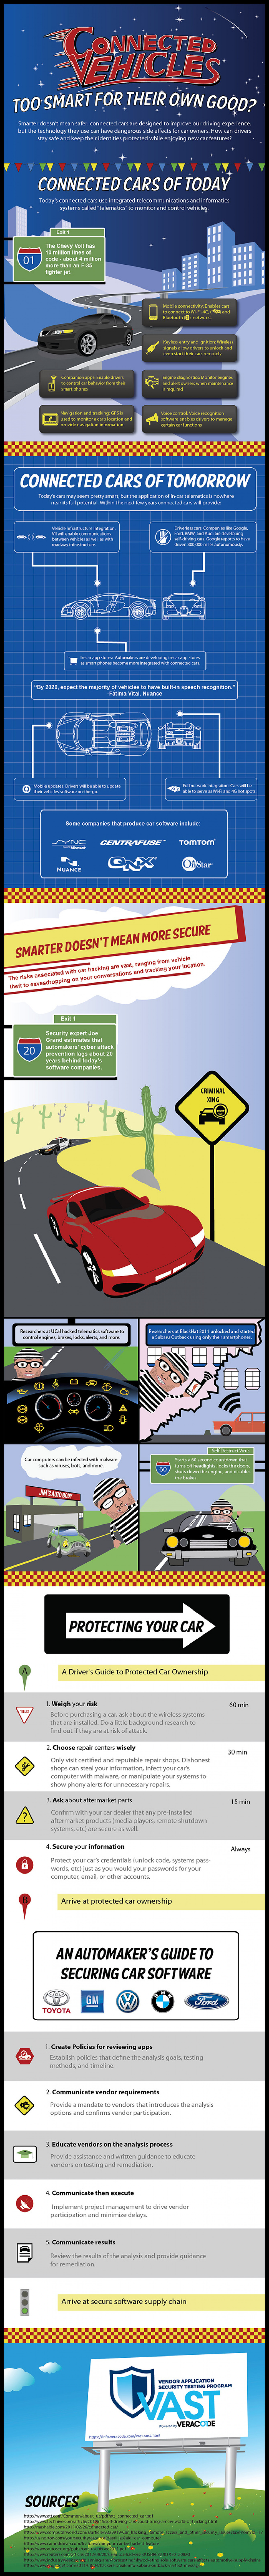 The Future of Cars: Connected Vehicles Infographic